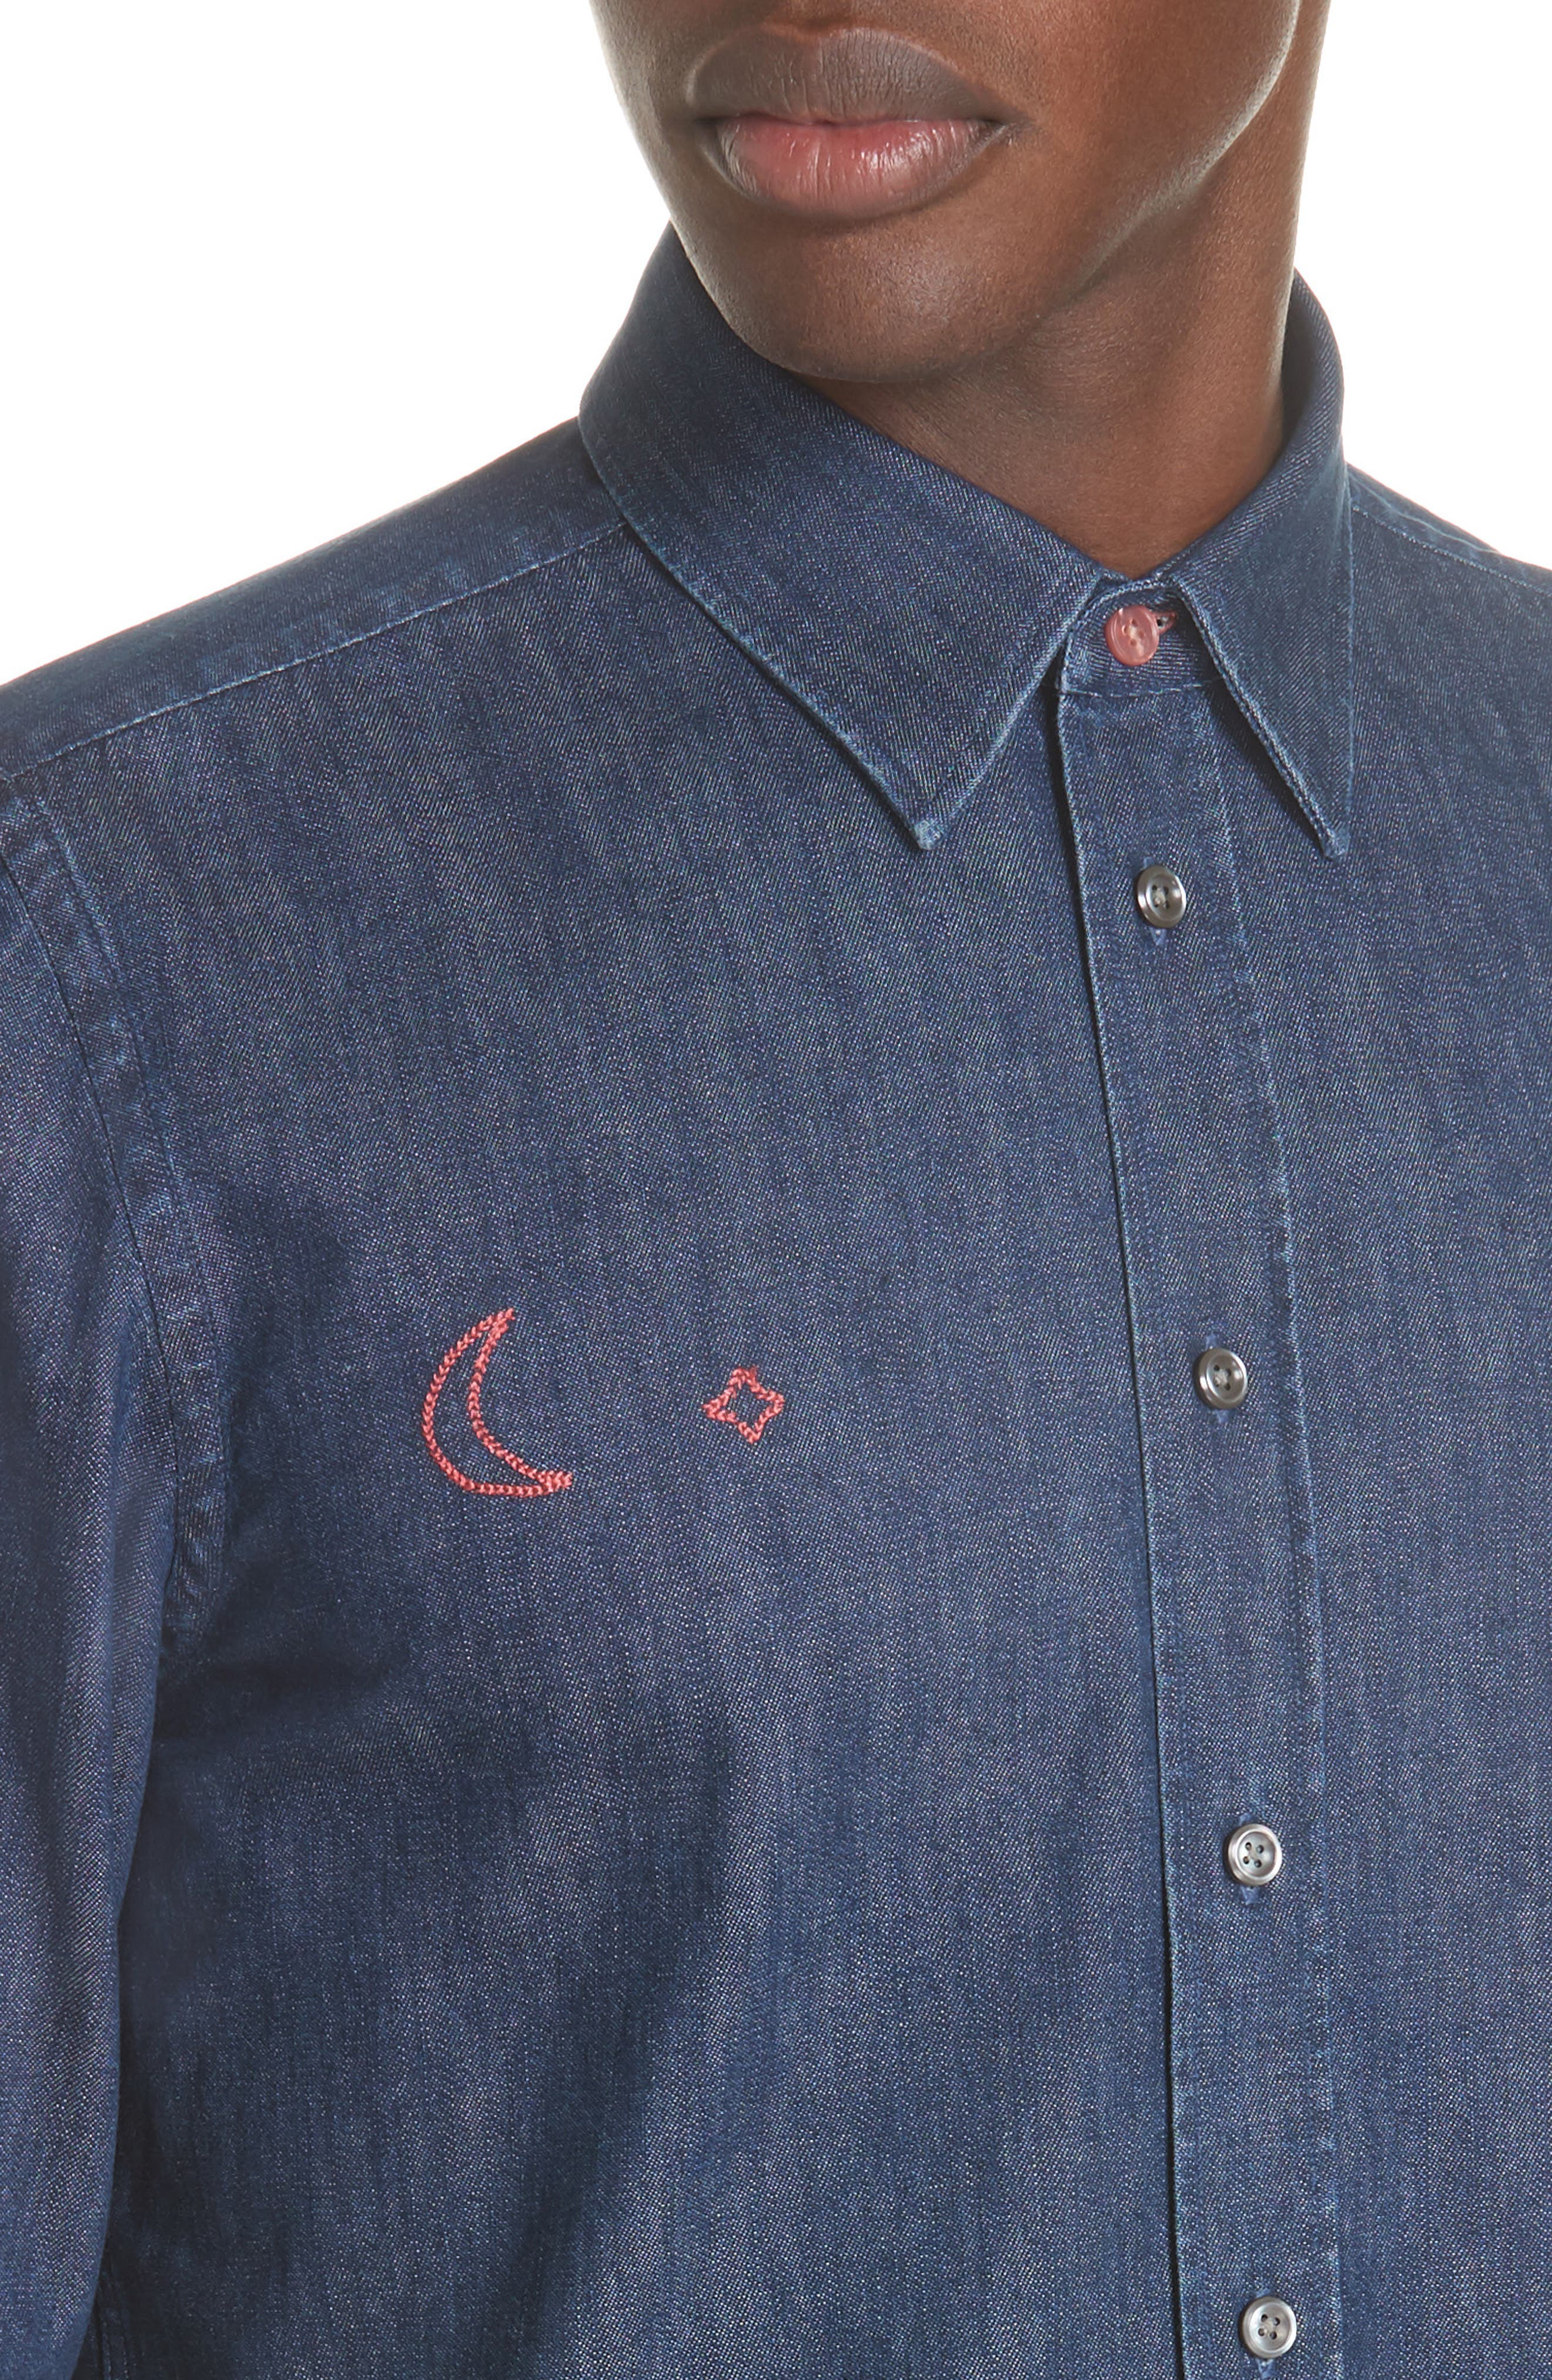 PS PAUL SMITH,                             Denim Shirt with Embroidery,                             Alternate thumbnail 2, color,                             427